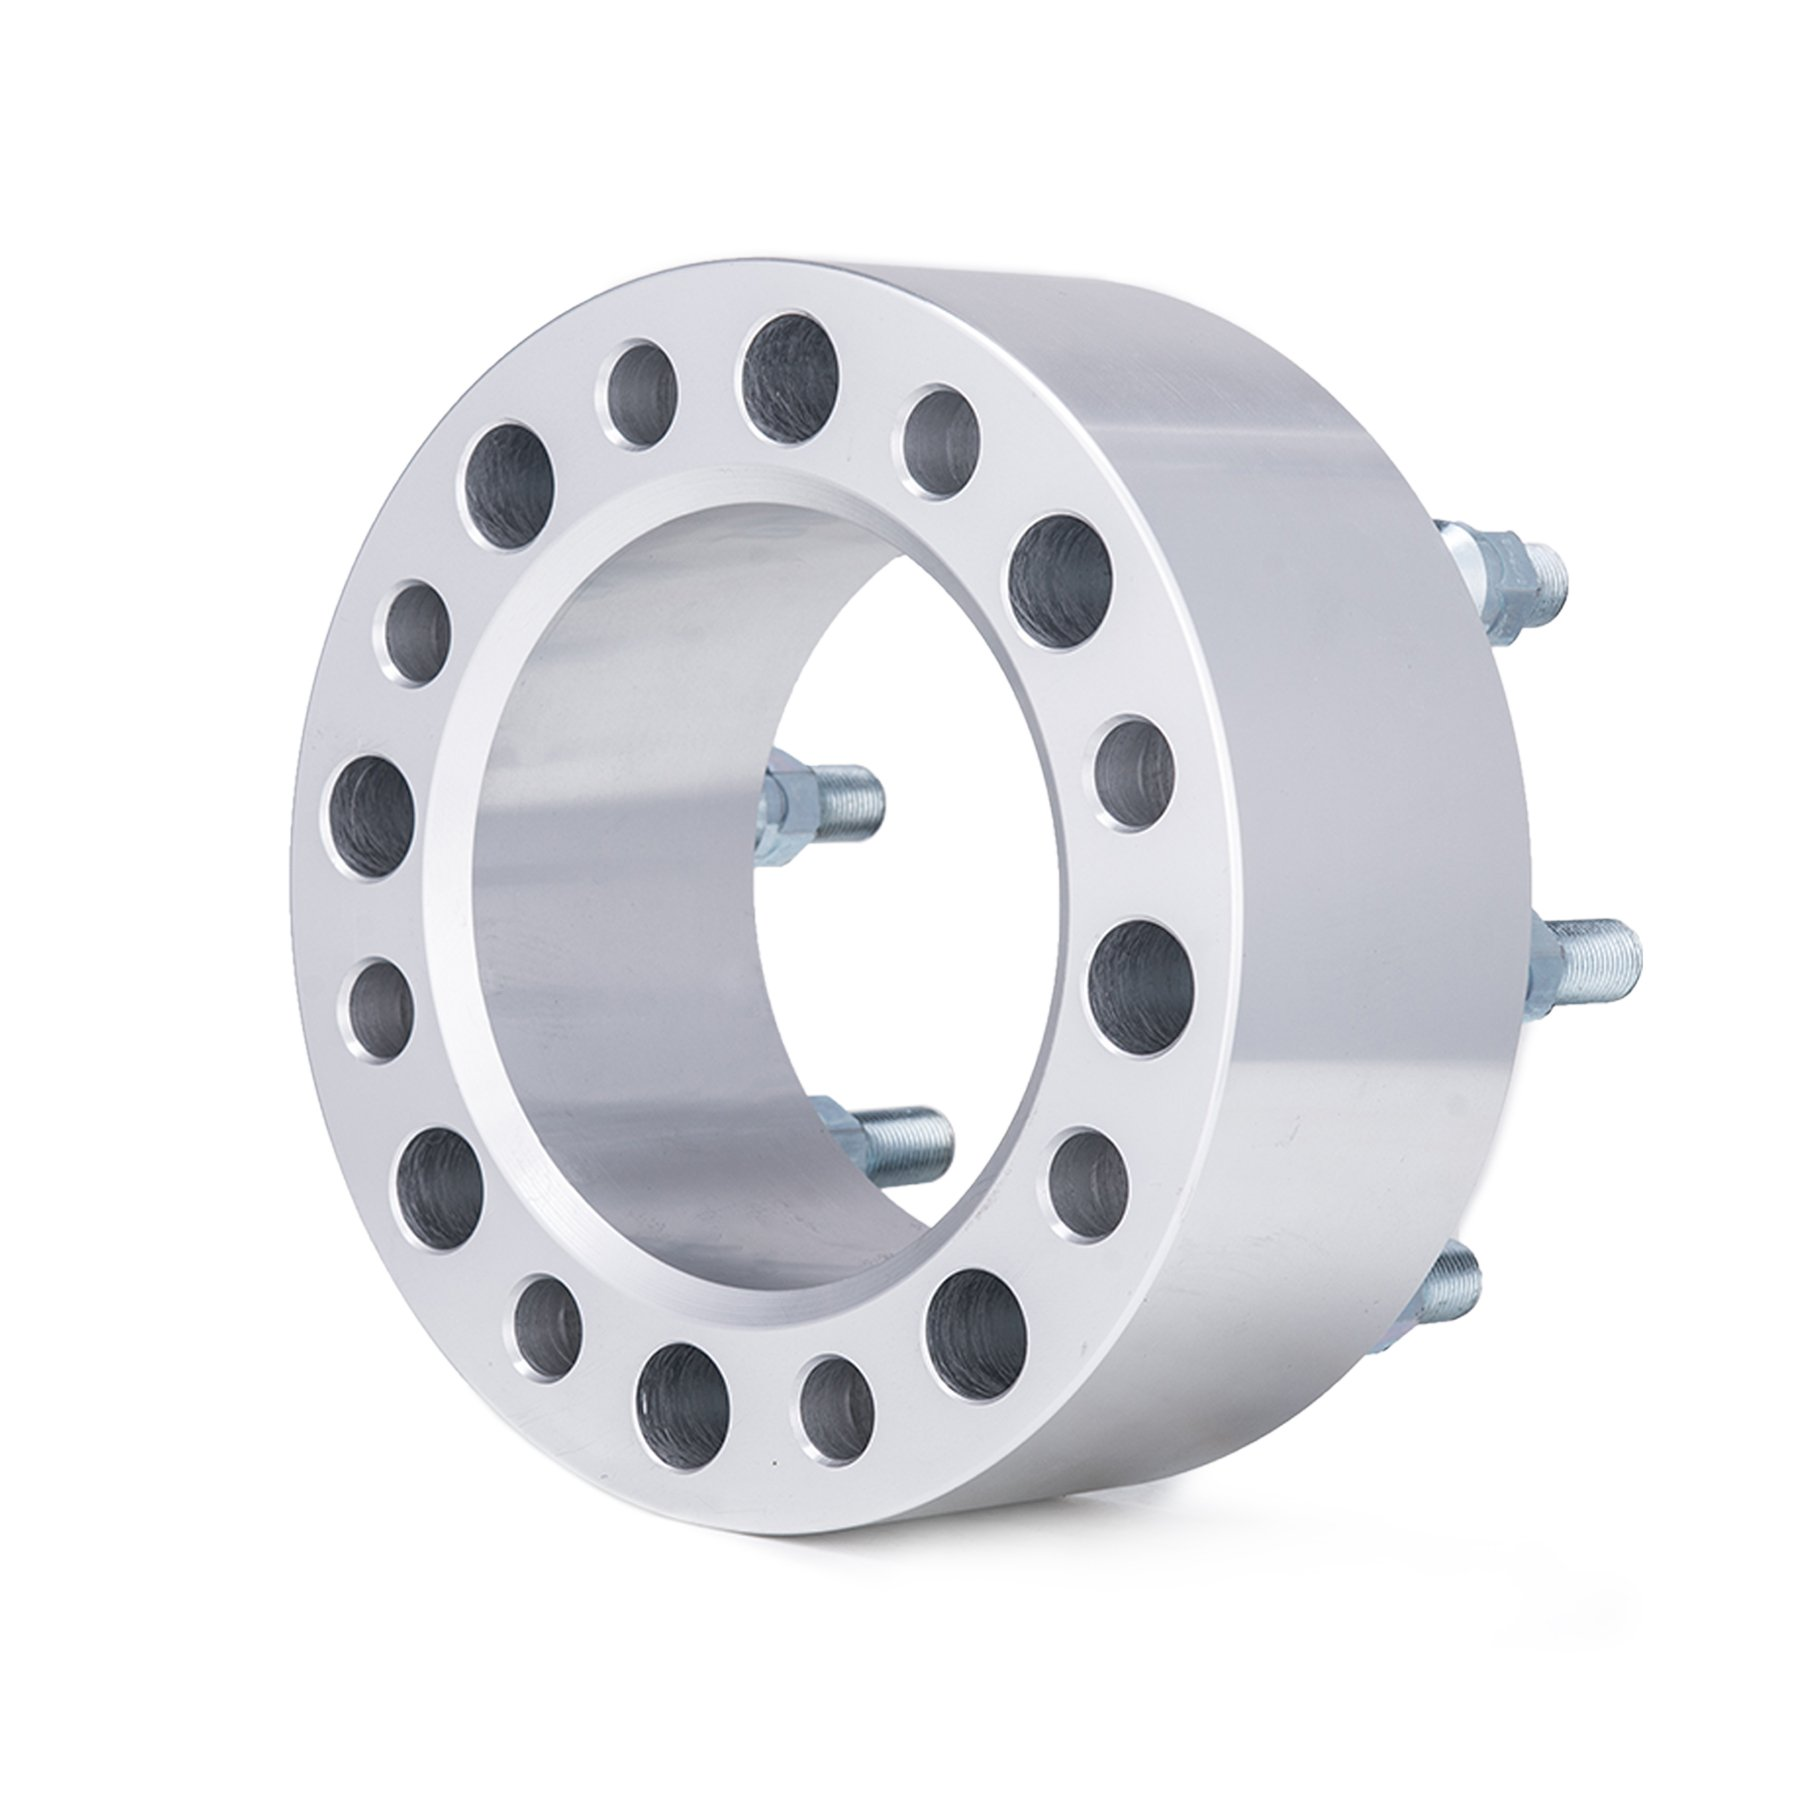 Orion Motor Tech 4pcs 3'' Wheel Spacers 8x6.5 with 9/16-18 Studs for 94-11 Dodge Ram 2500 3500, 88-98 Ford F250 F350, Ford Econoline 250 350 by OrionMotorTech (Image #2)